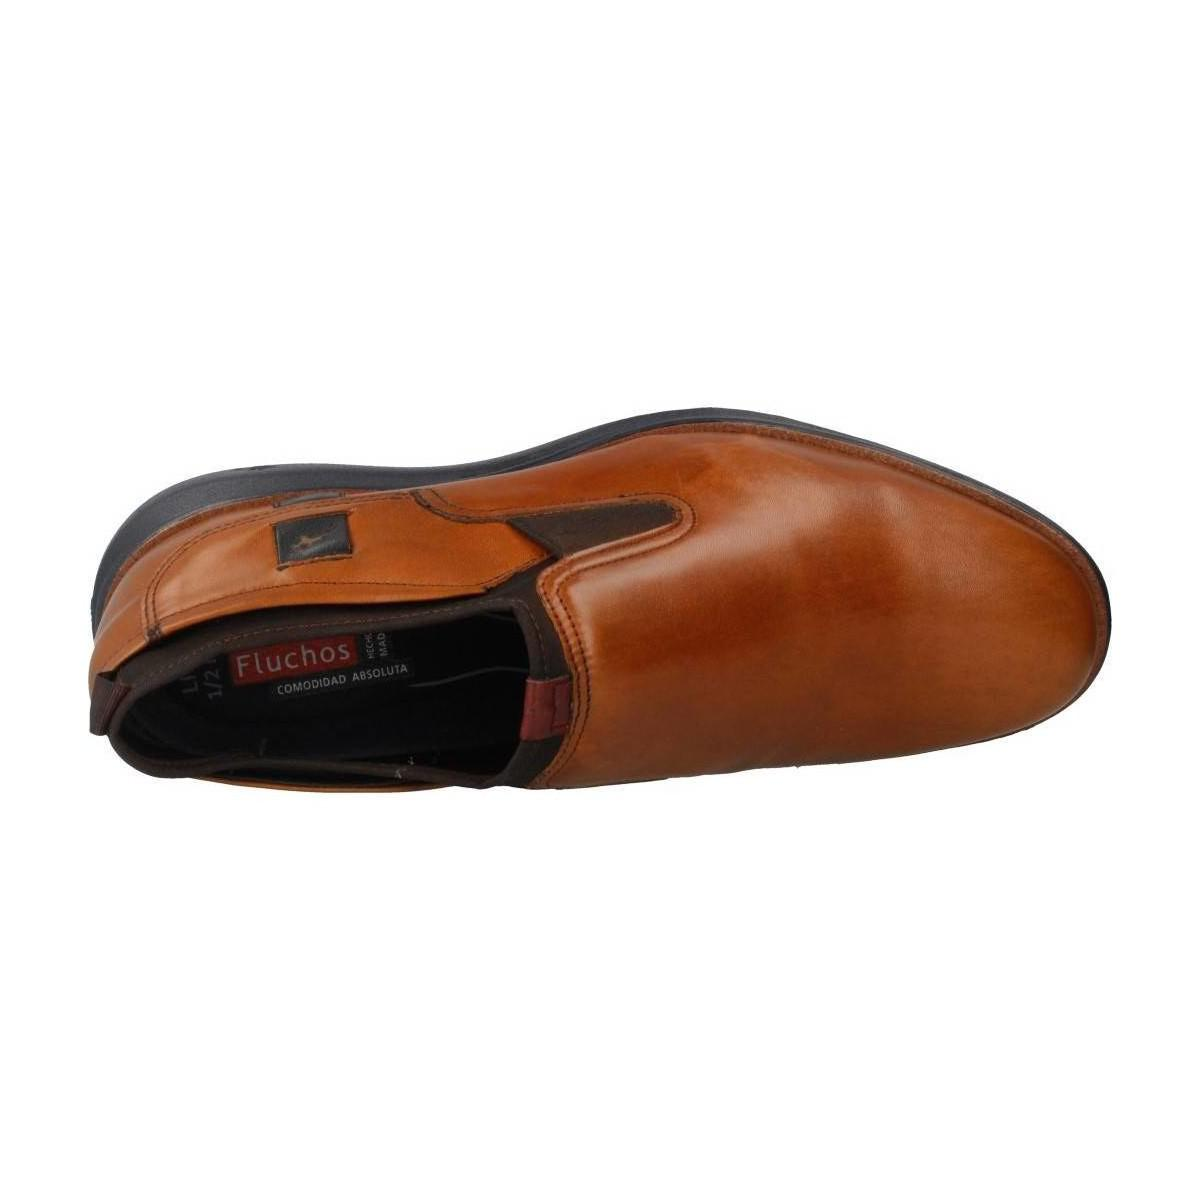 Fluchos 9850 Men's Loafers / Casual Shoes In Brown for Men